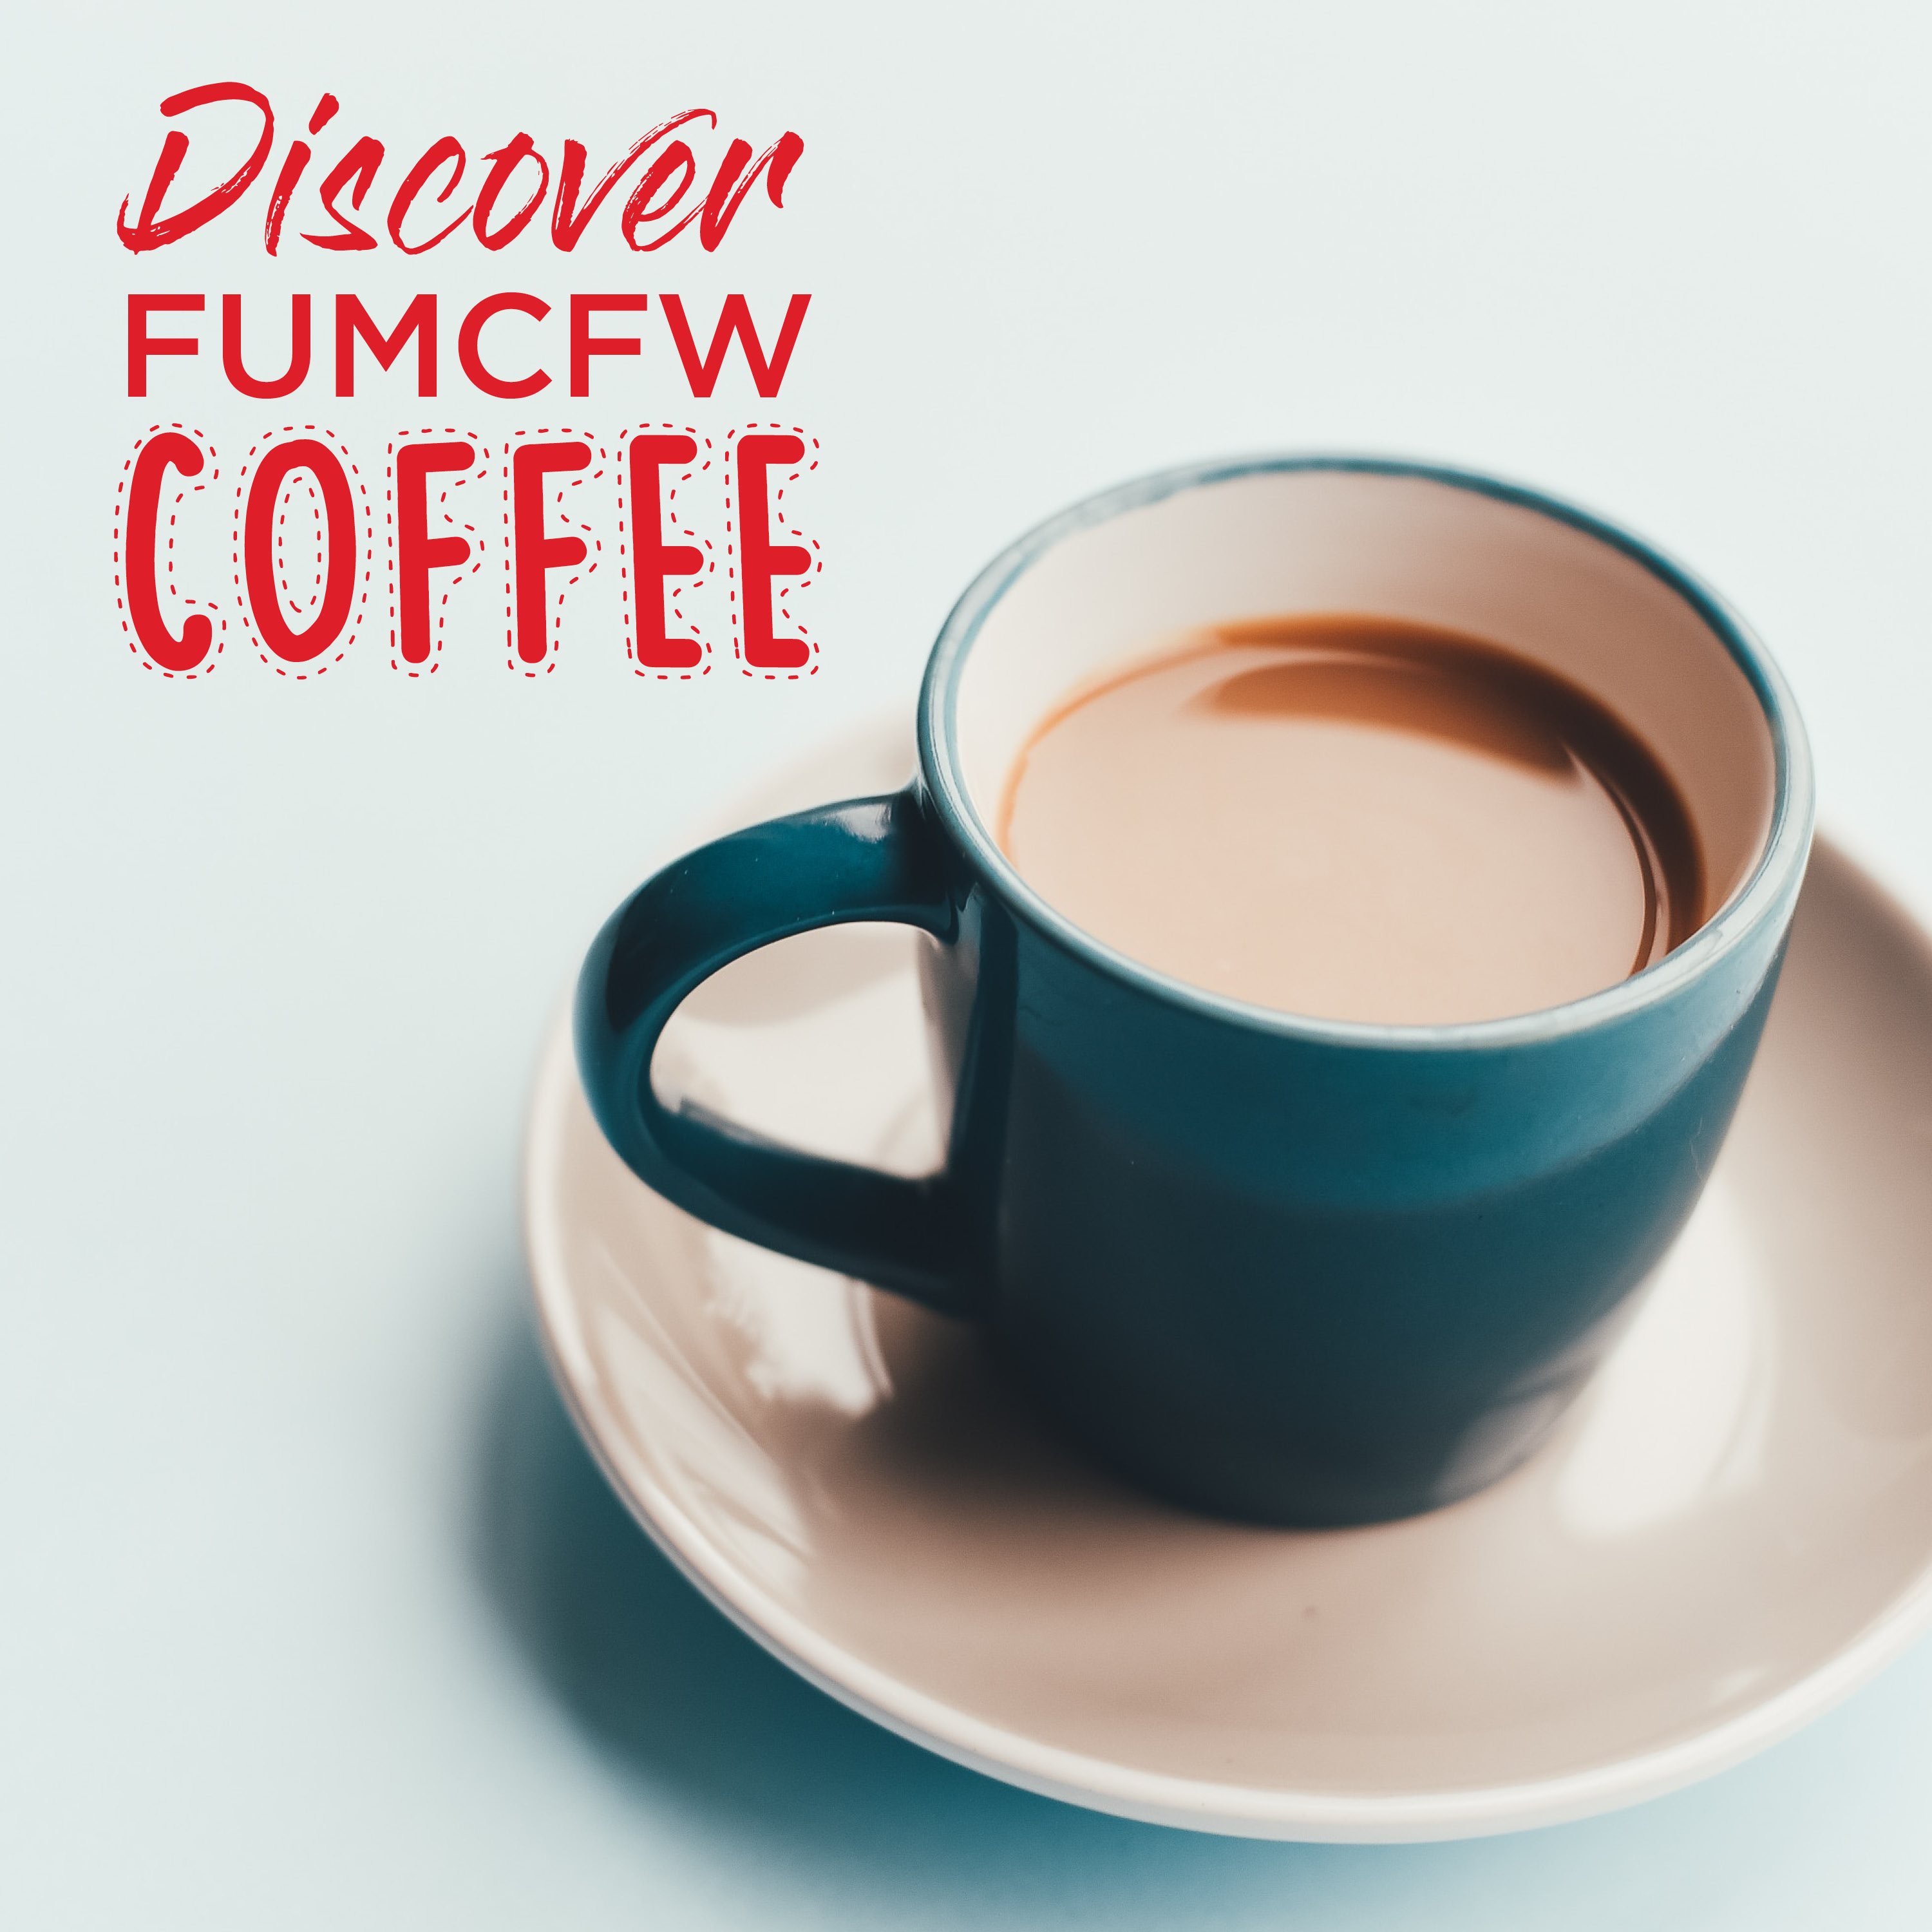 Our Next Discover FUMCFW Coffee is September 1